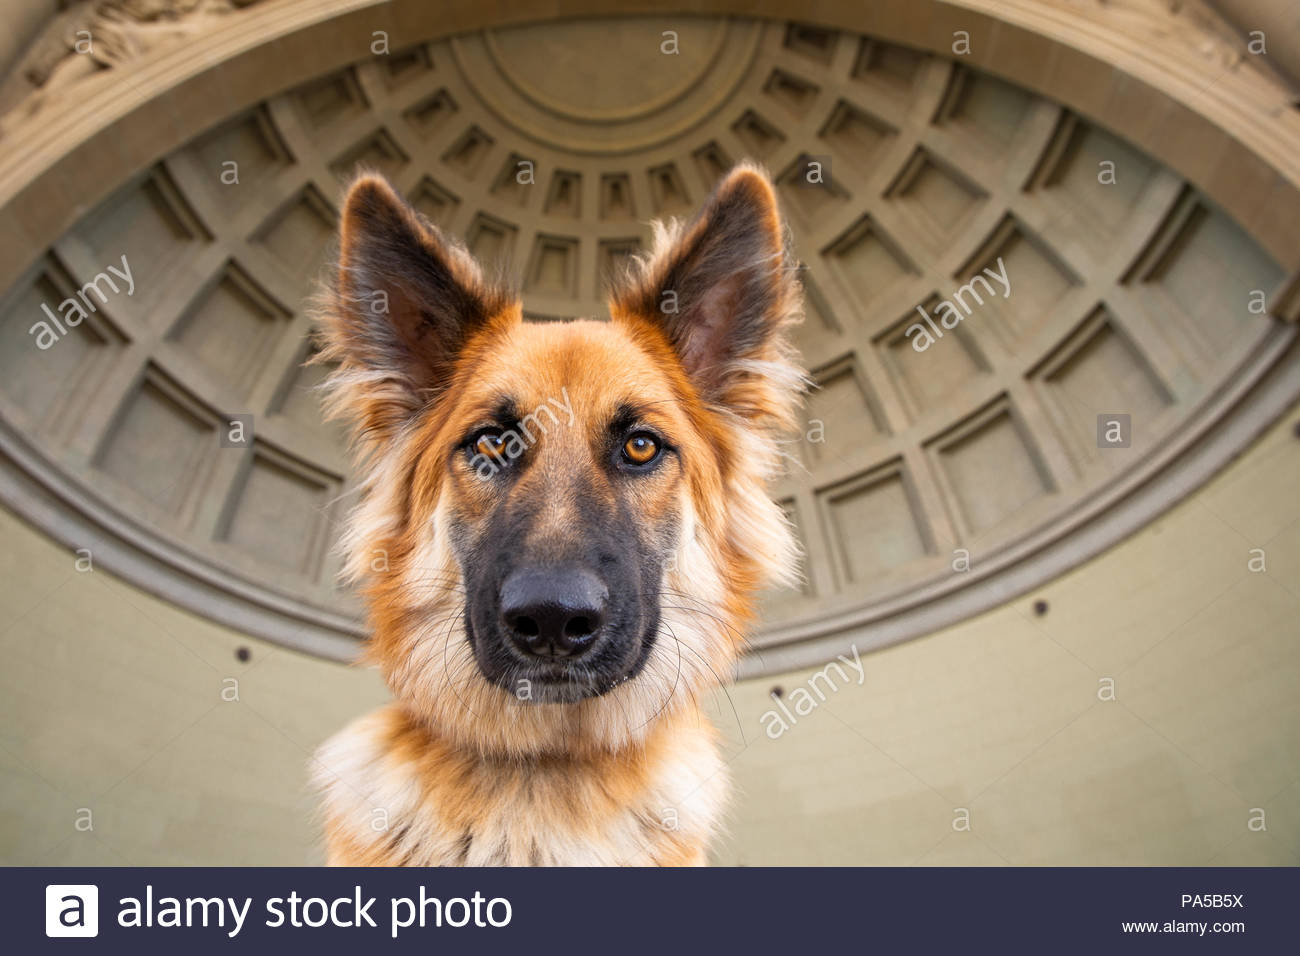 Close-up of German Shepherd MIx with Large Ears in front of a Coffered Bandshell Structure - Stock Image